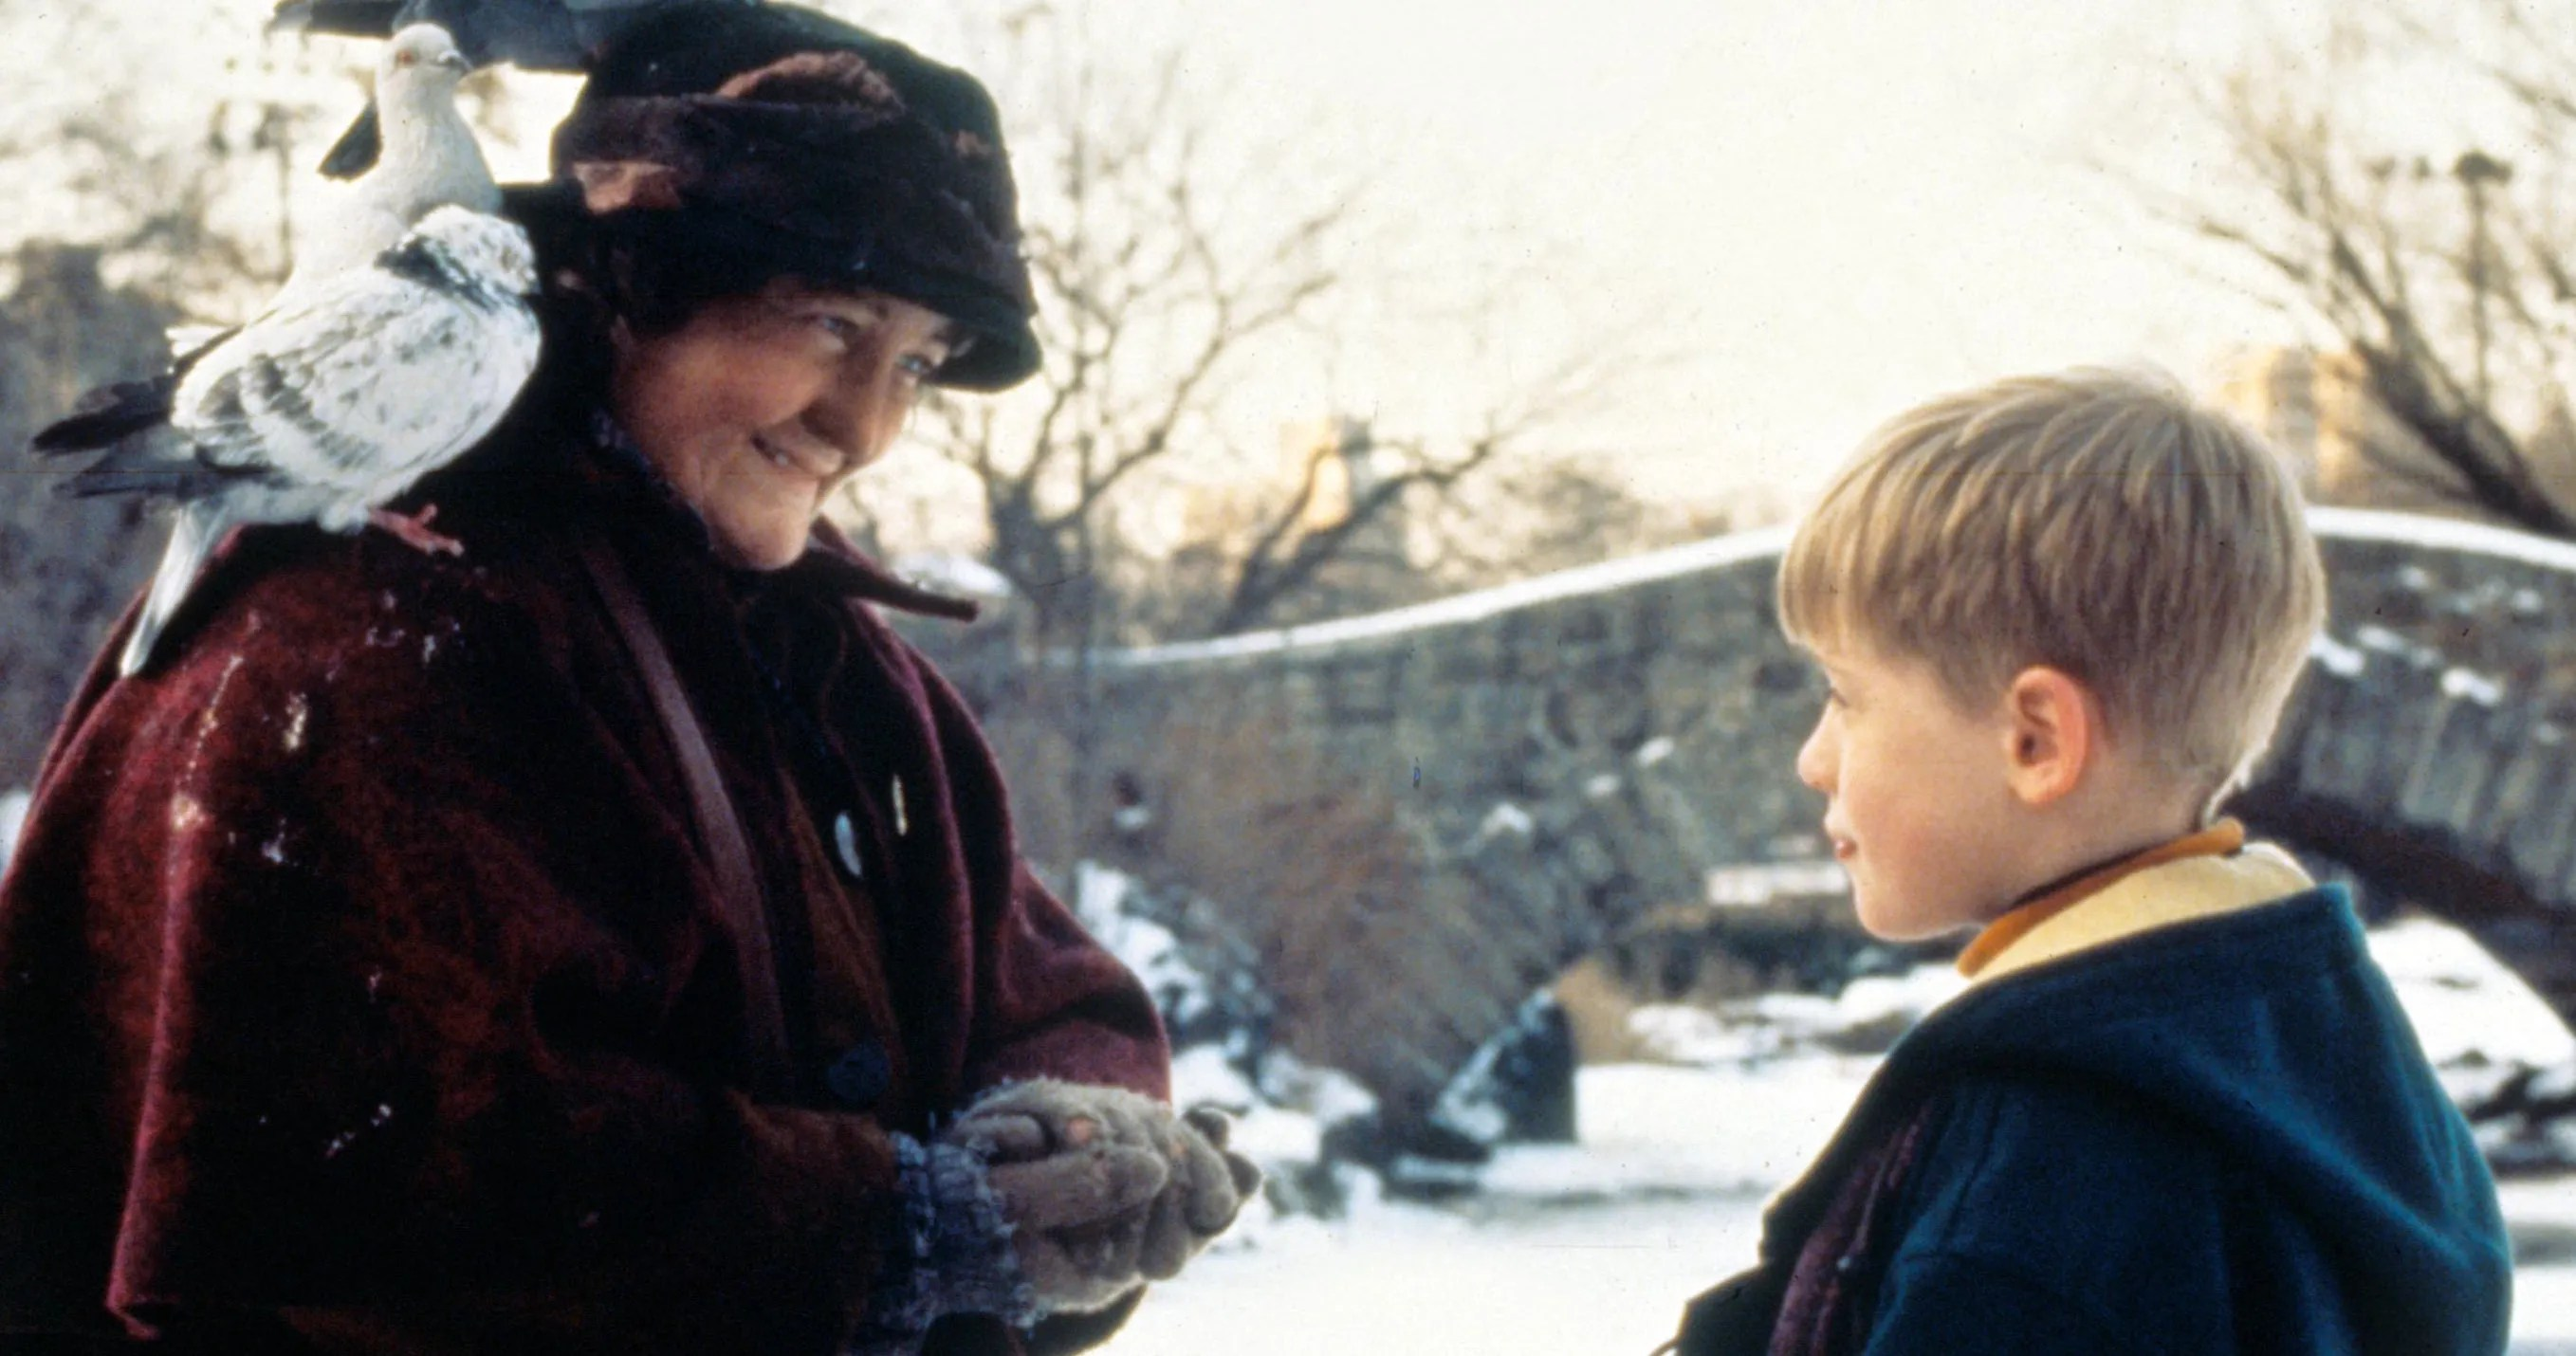 'Home Alone 2' Pigeon Lady Brenda Fricker Will Sadly Spend This Dark Christmas Alone